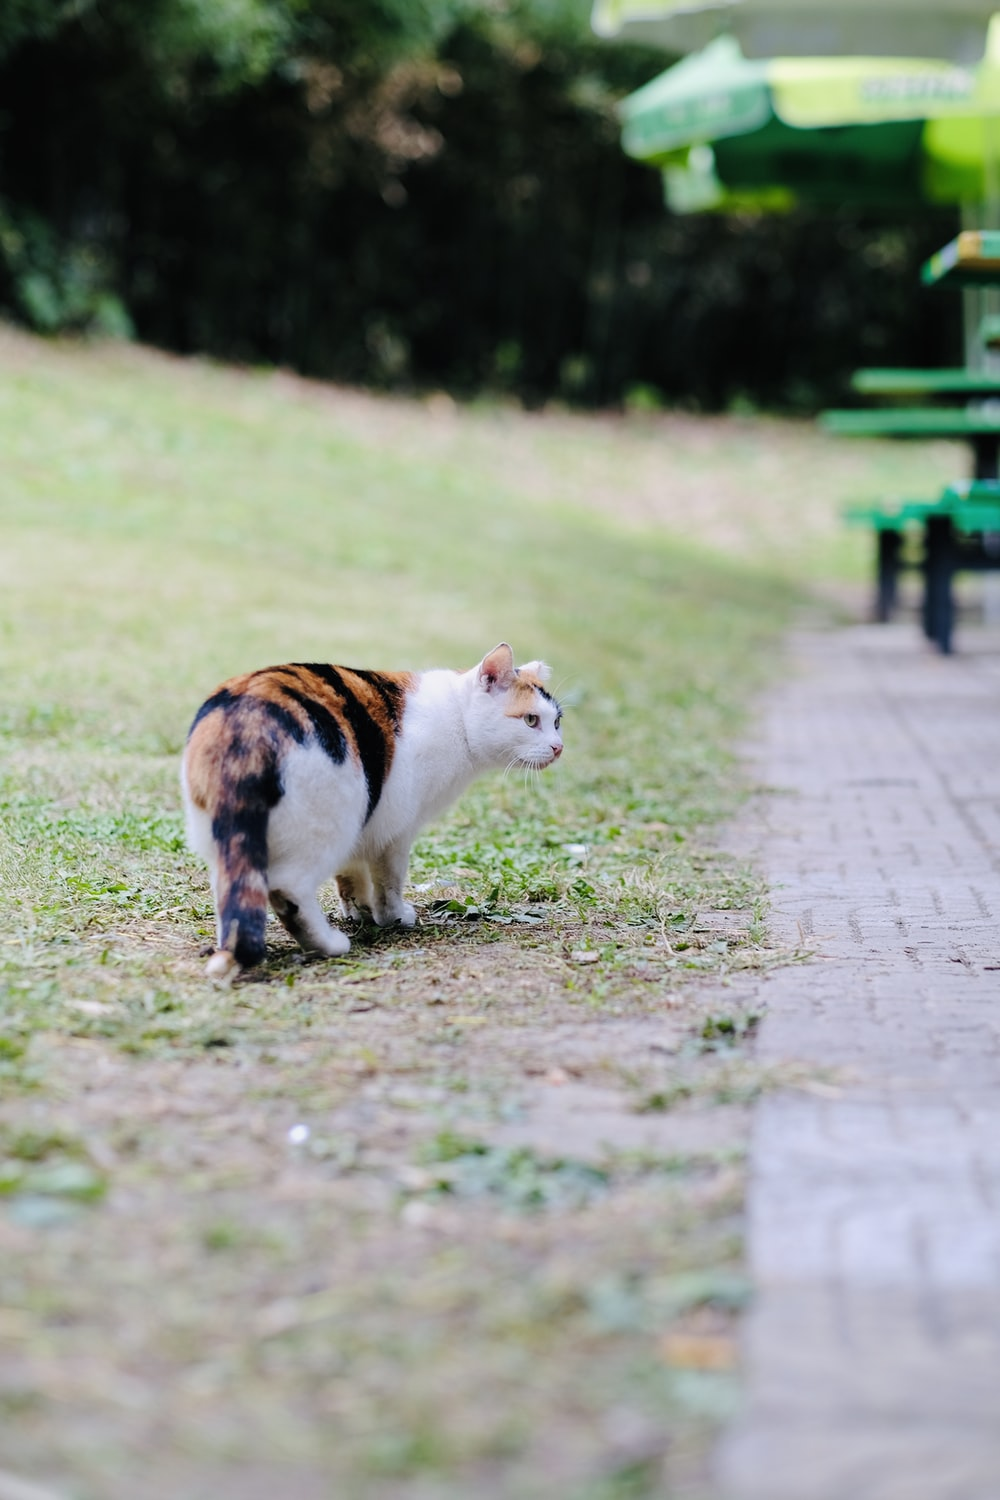 orange and white cat on brown dirt road during daytime